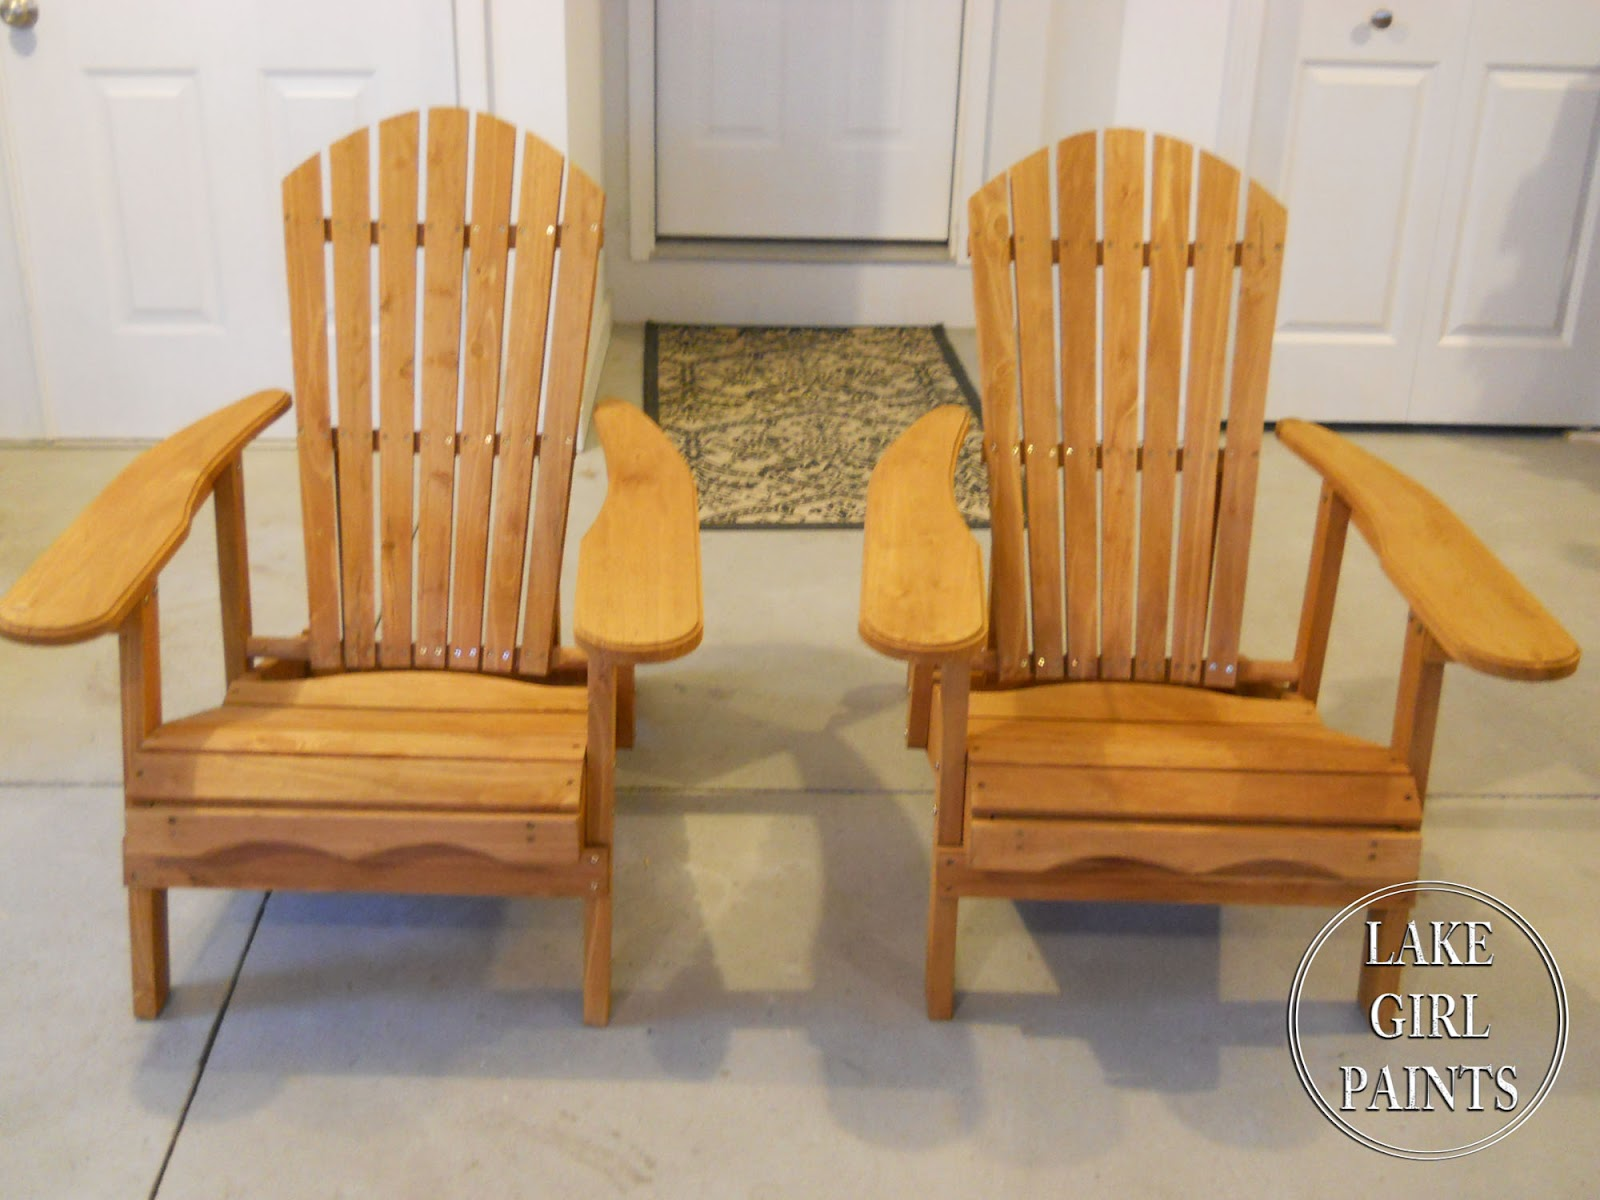 Ideas For Painting Adirondack Chairs Chair With Cup Holder Lake Girl Paints Summer Beach